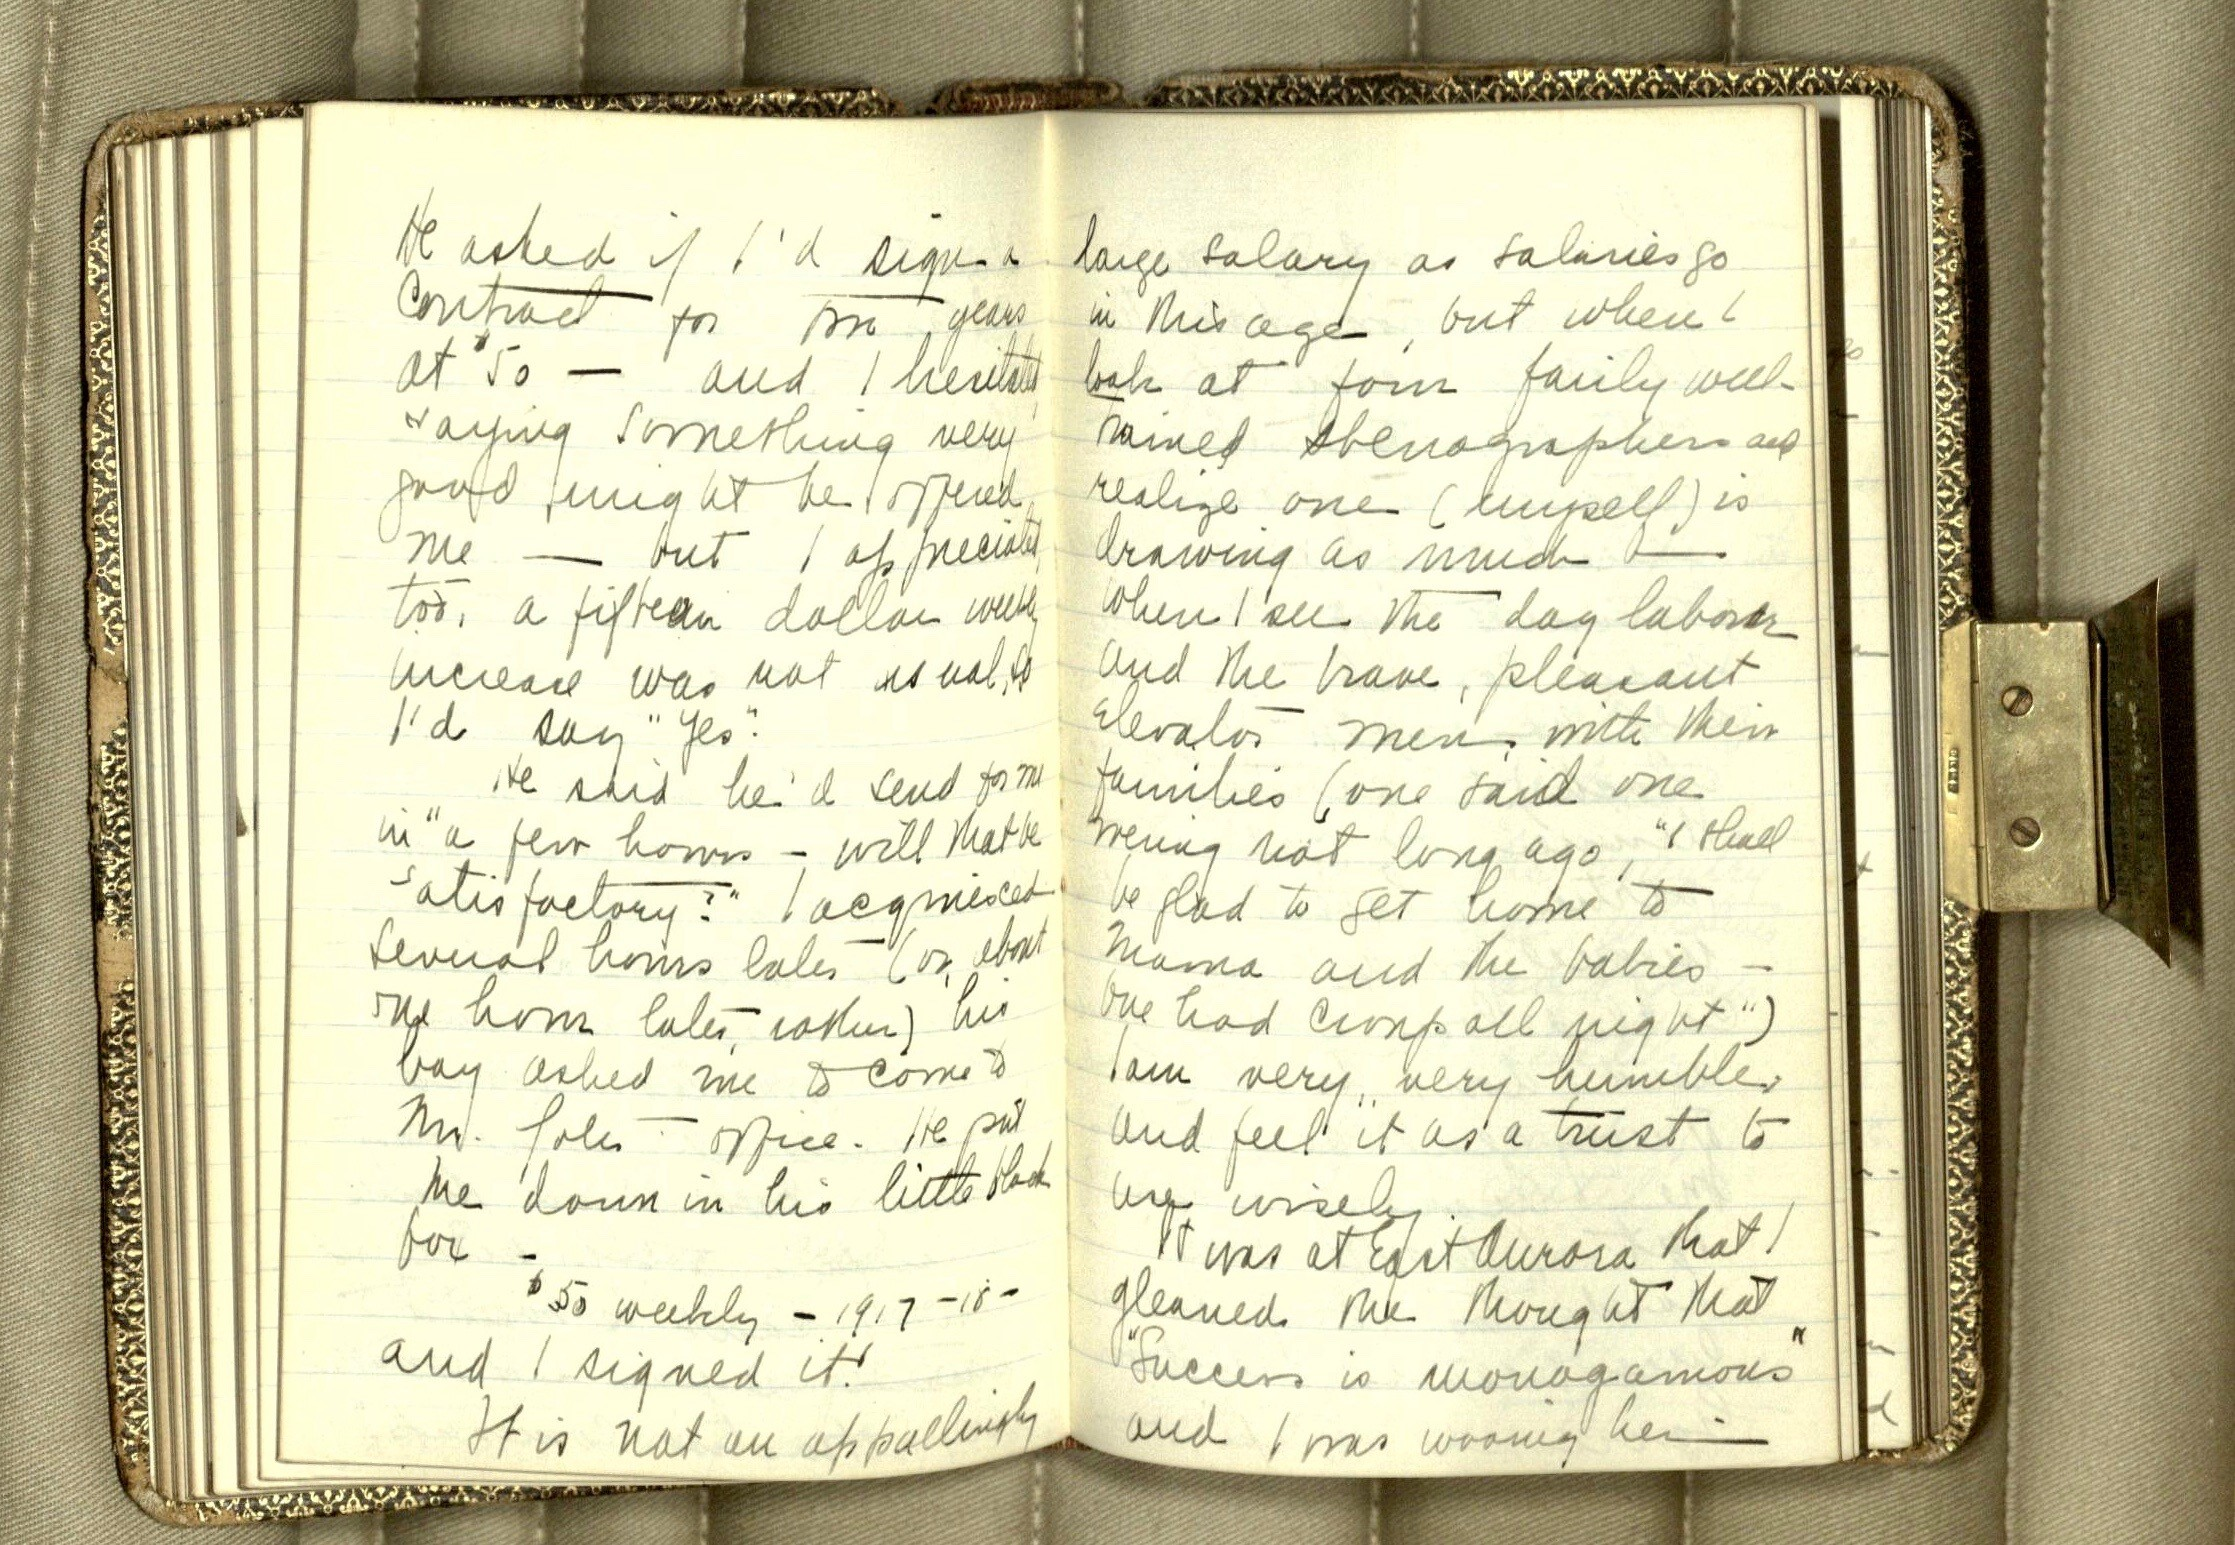 Photograph of two interior pages of Irene Sickel Sims's handwritten diary